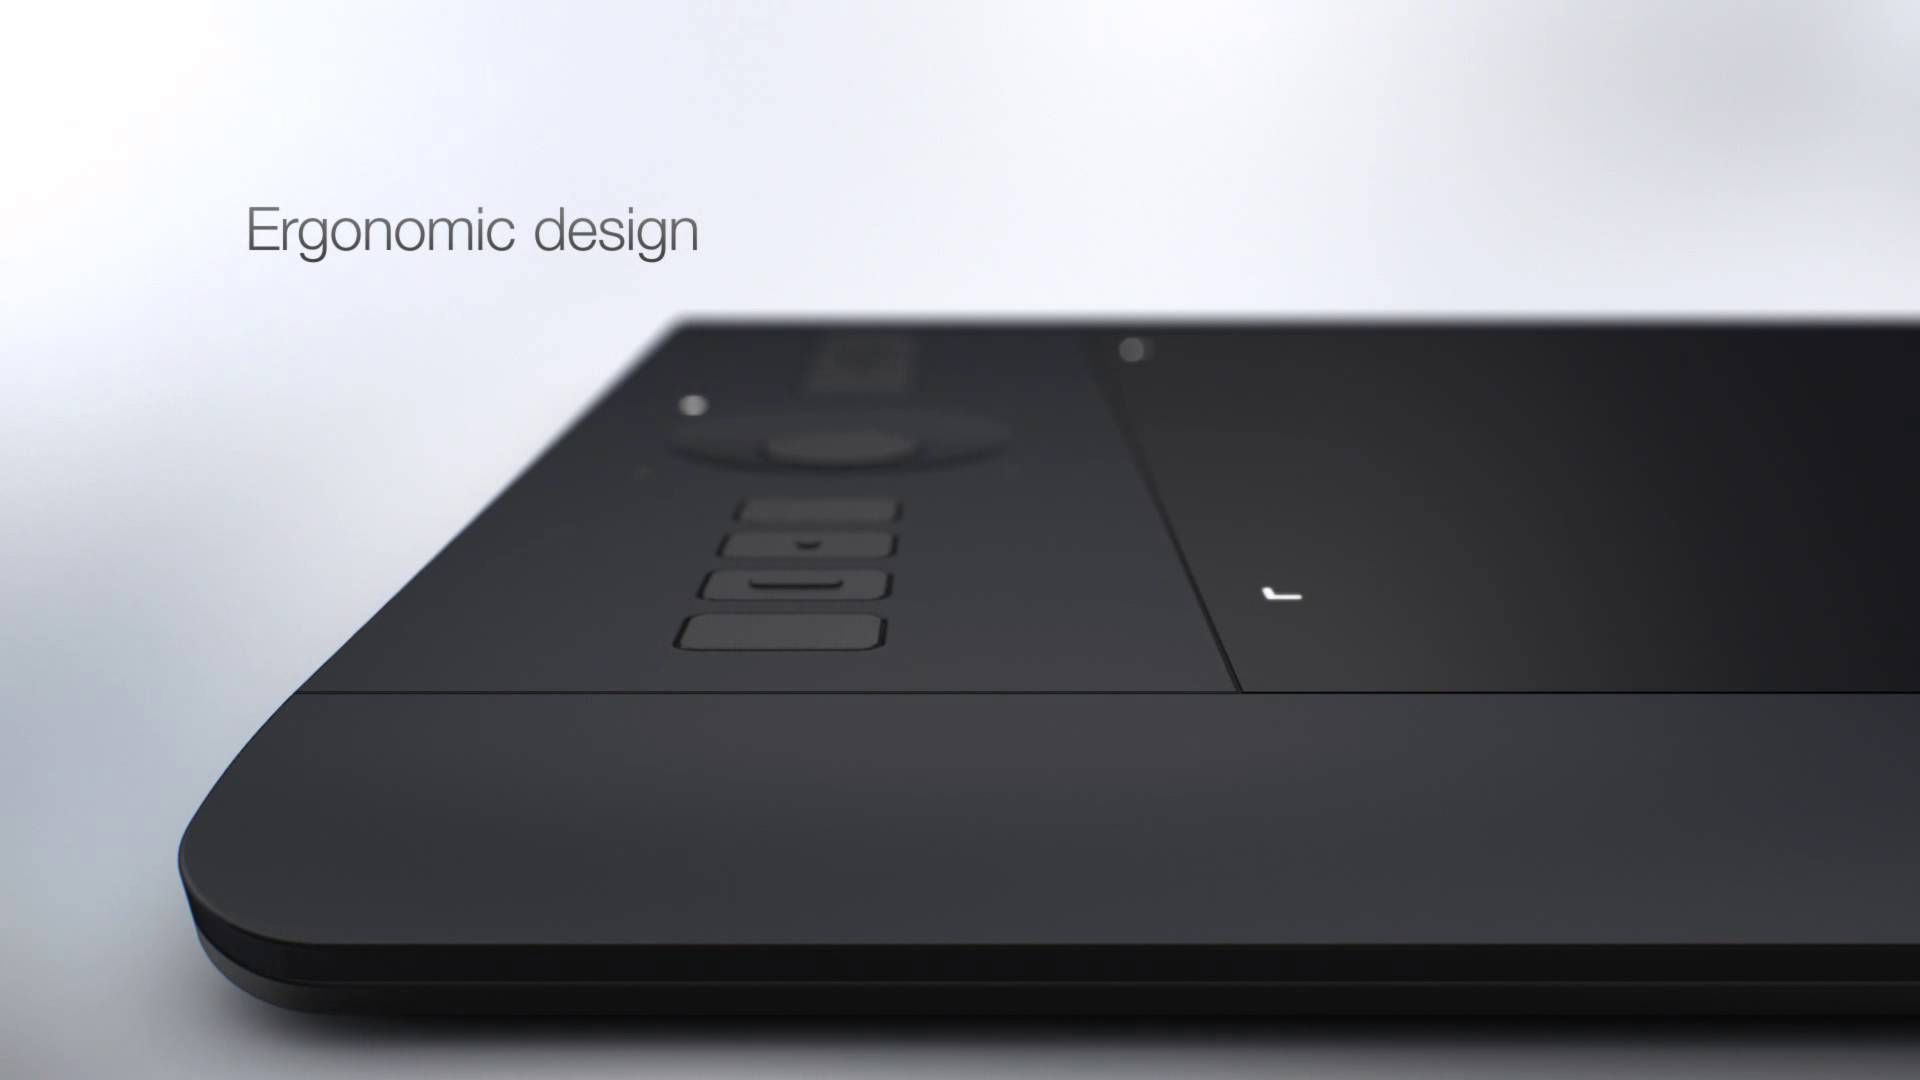 The Medium Intuos Pro Professional Pen Touch Tablet From Wacom